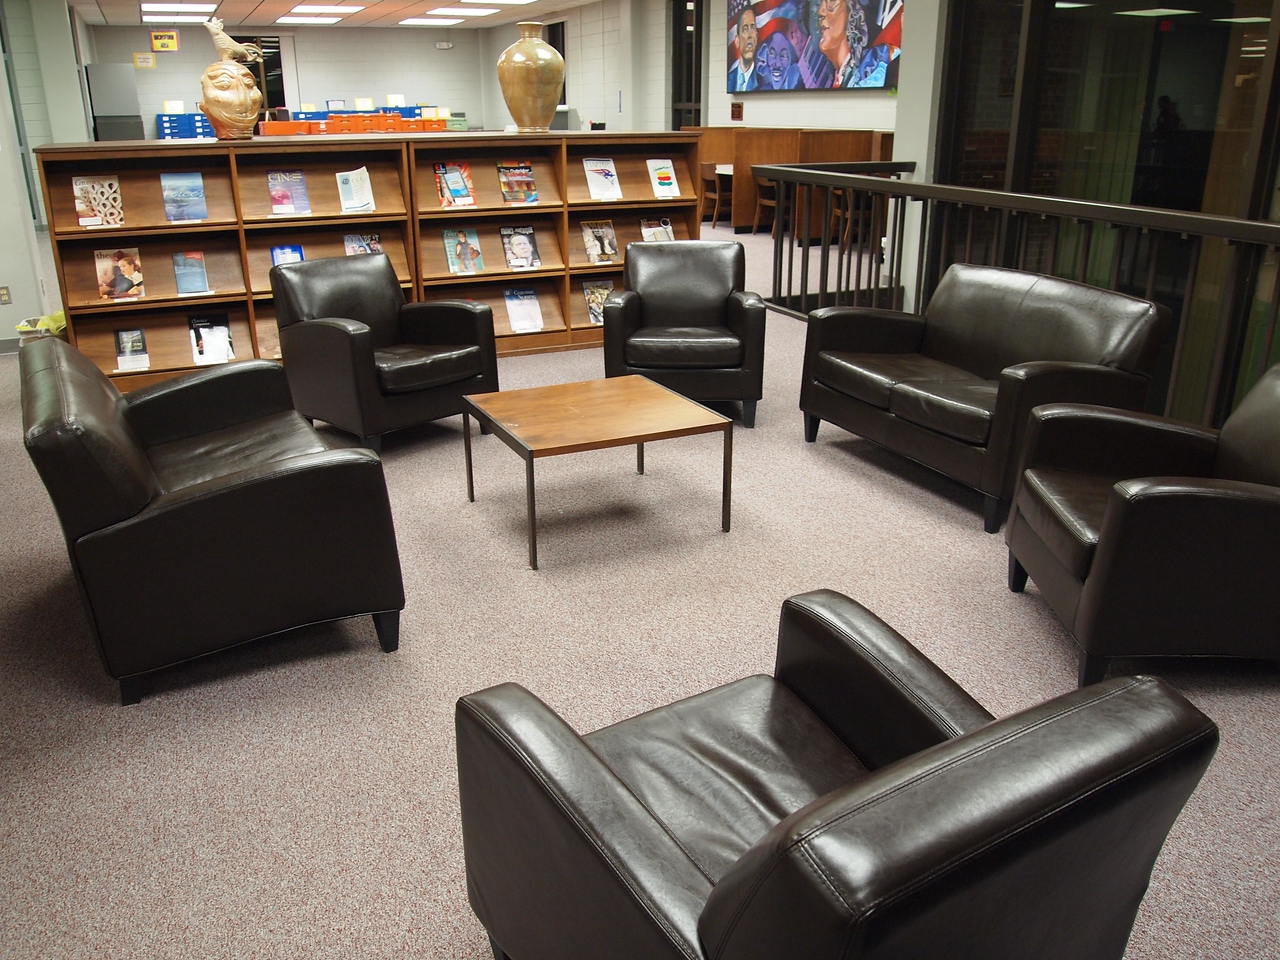 Some nice new leather seats to sit and study in